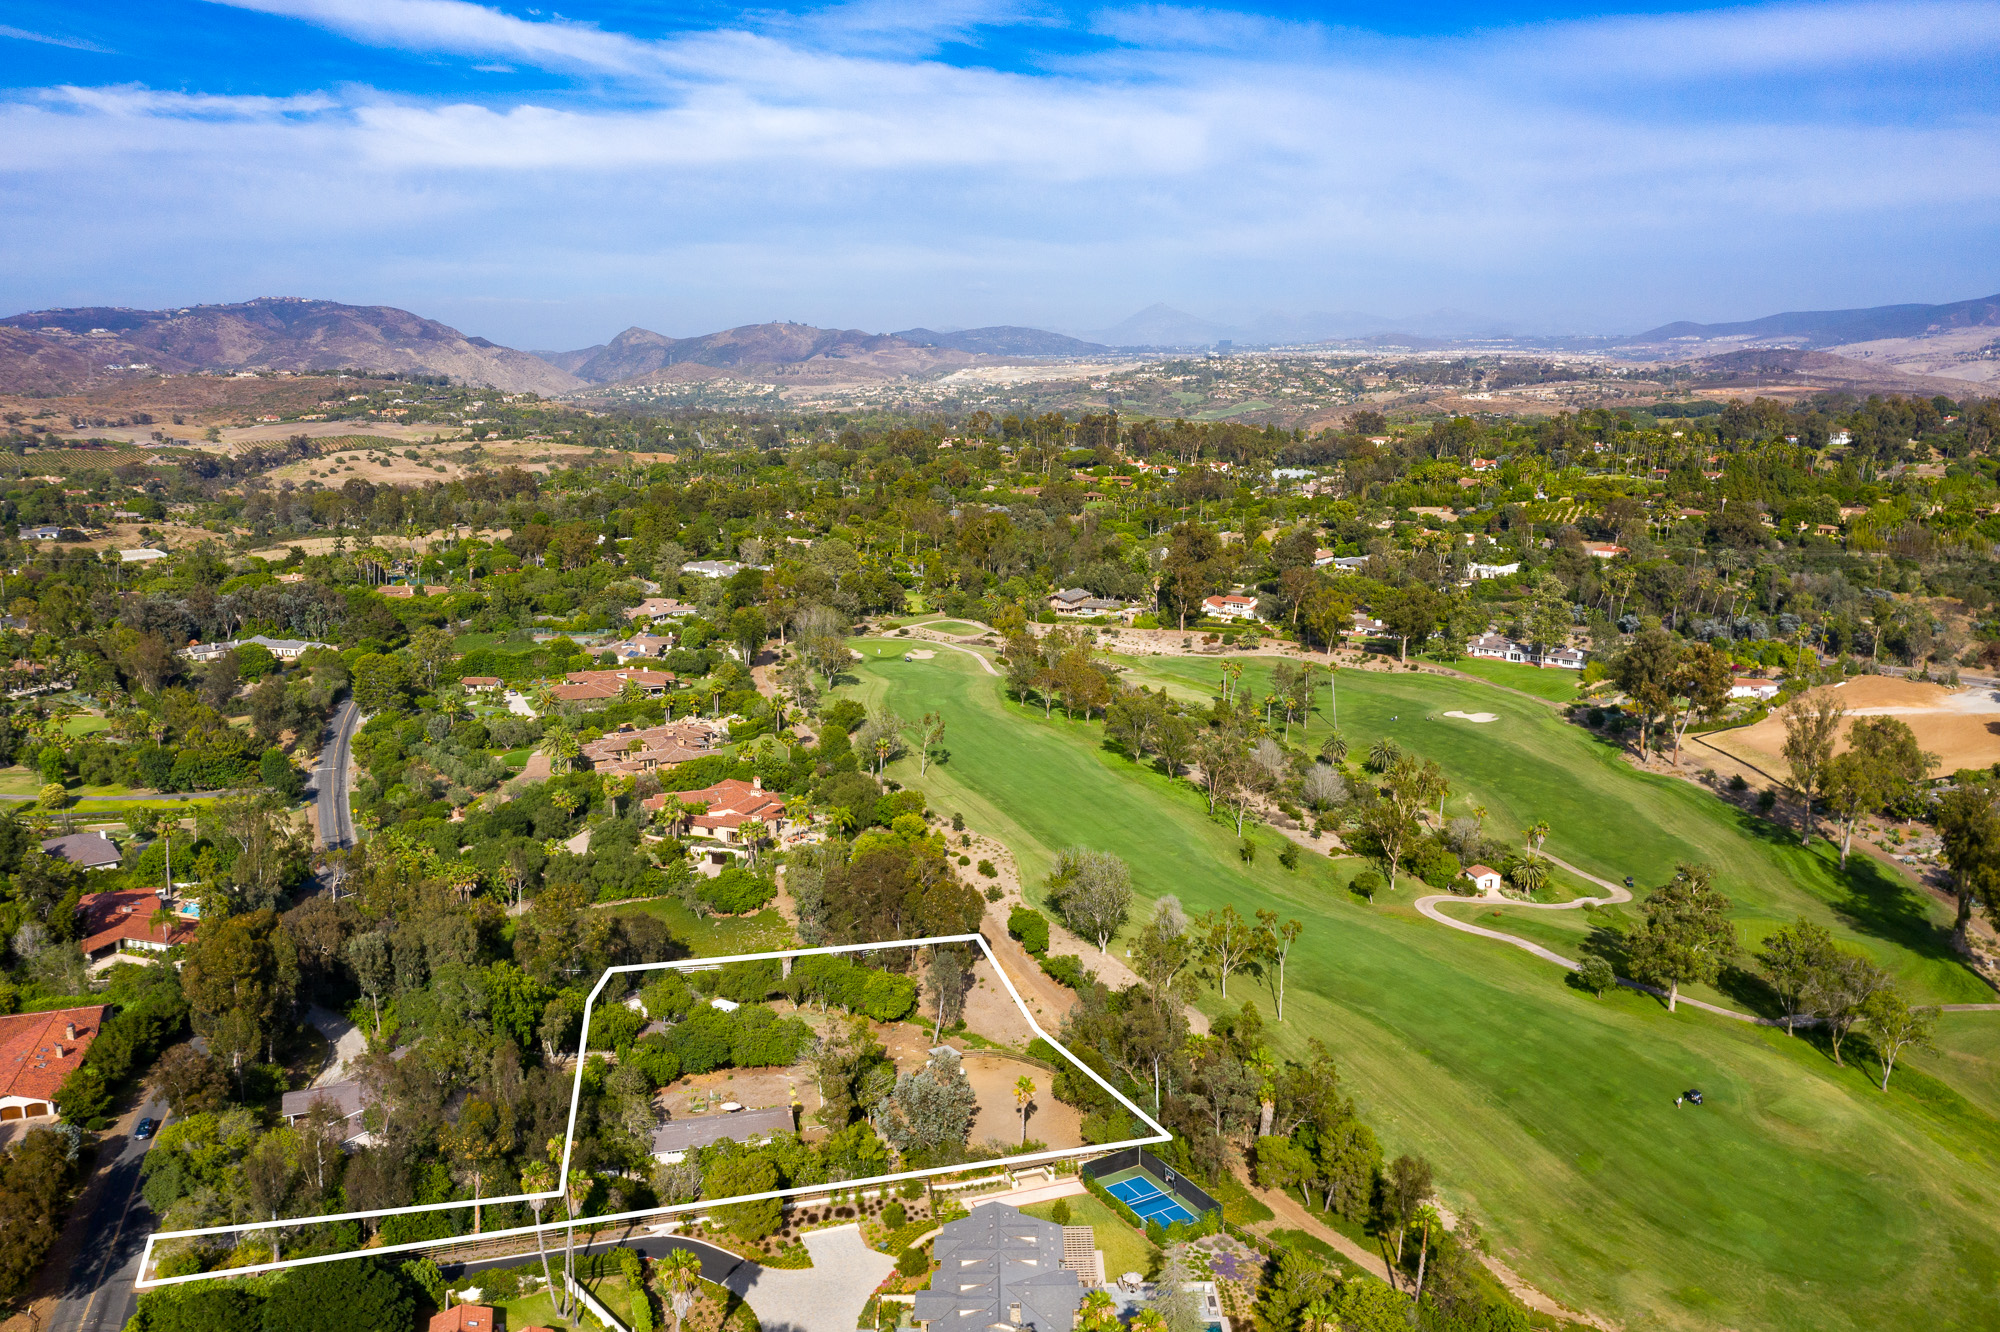 Sold 2020 Represented Buyer & Seller -  Rancho Santa Fe, CA 92067